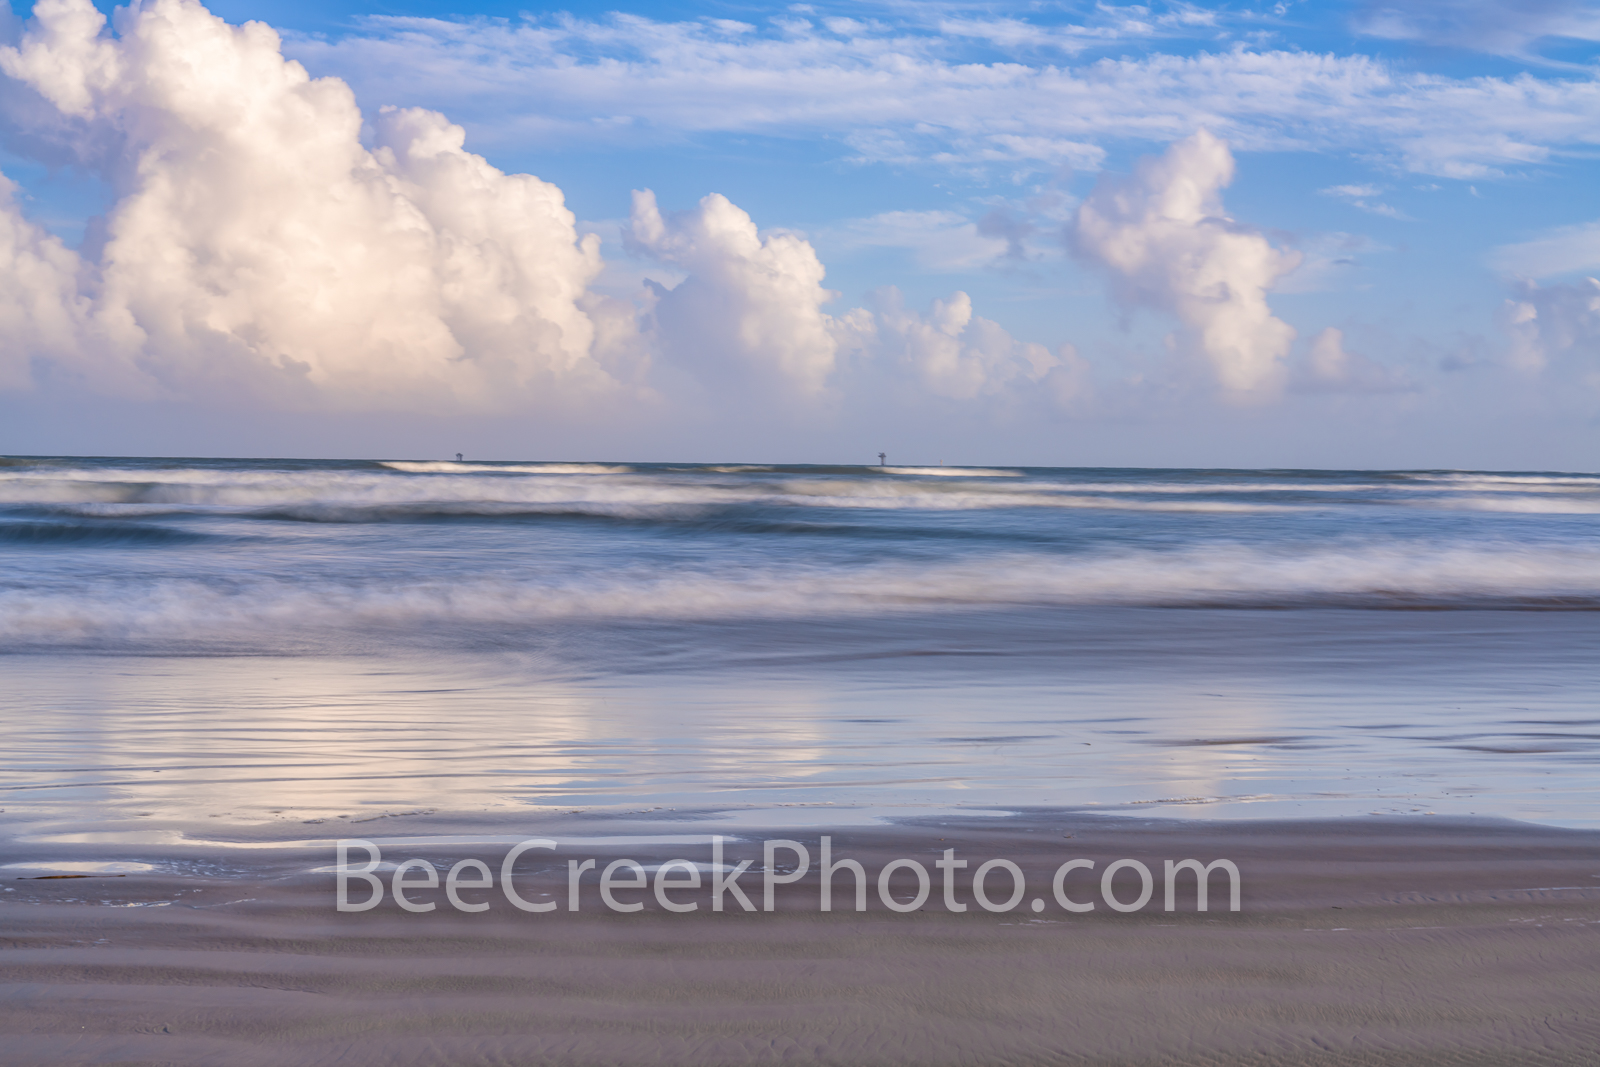 port aransas, beach, beach,  clouds, gulf of mexico, port a, sea, ocean, blue, clouds, reflections, reflect, beautiful, pastel, colors, colorful, seascape, beach scene, texas coast, coastal, coastal i, photo